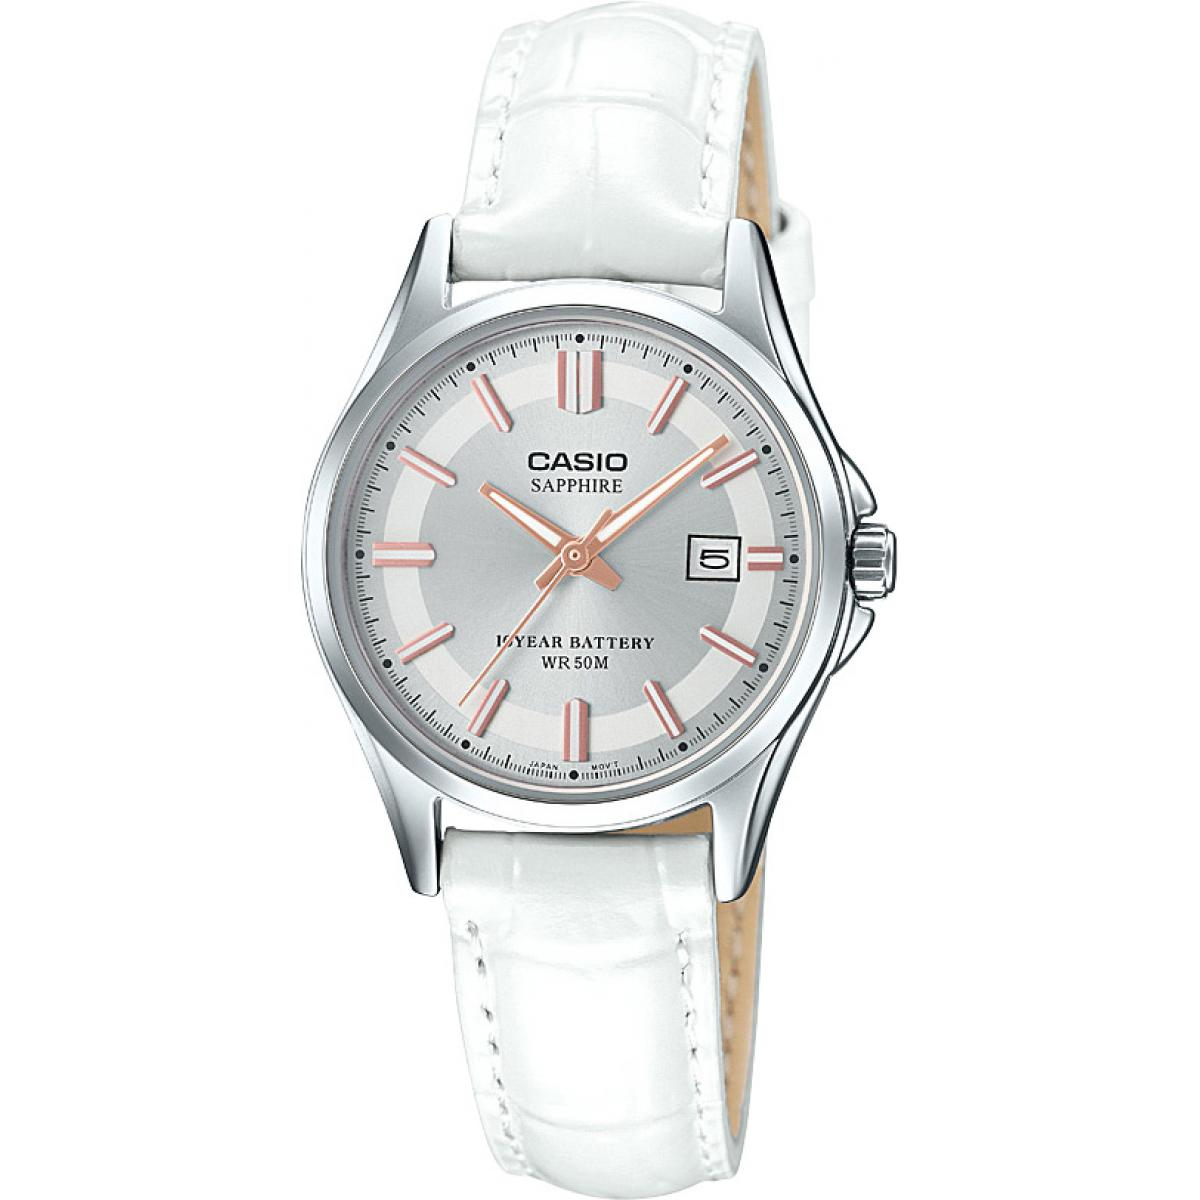 Montre Casio Collection LTS 100L 9AVEF Montre Boitier  85iIi